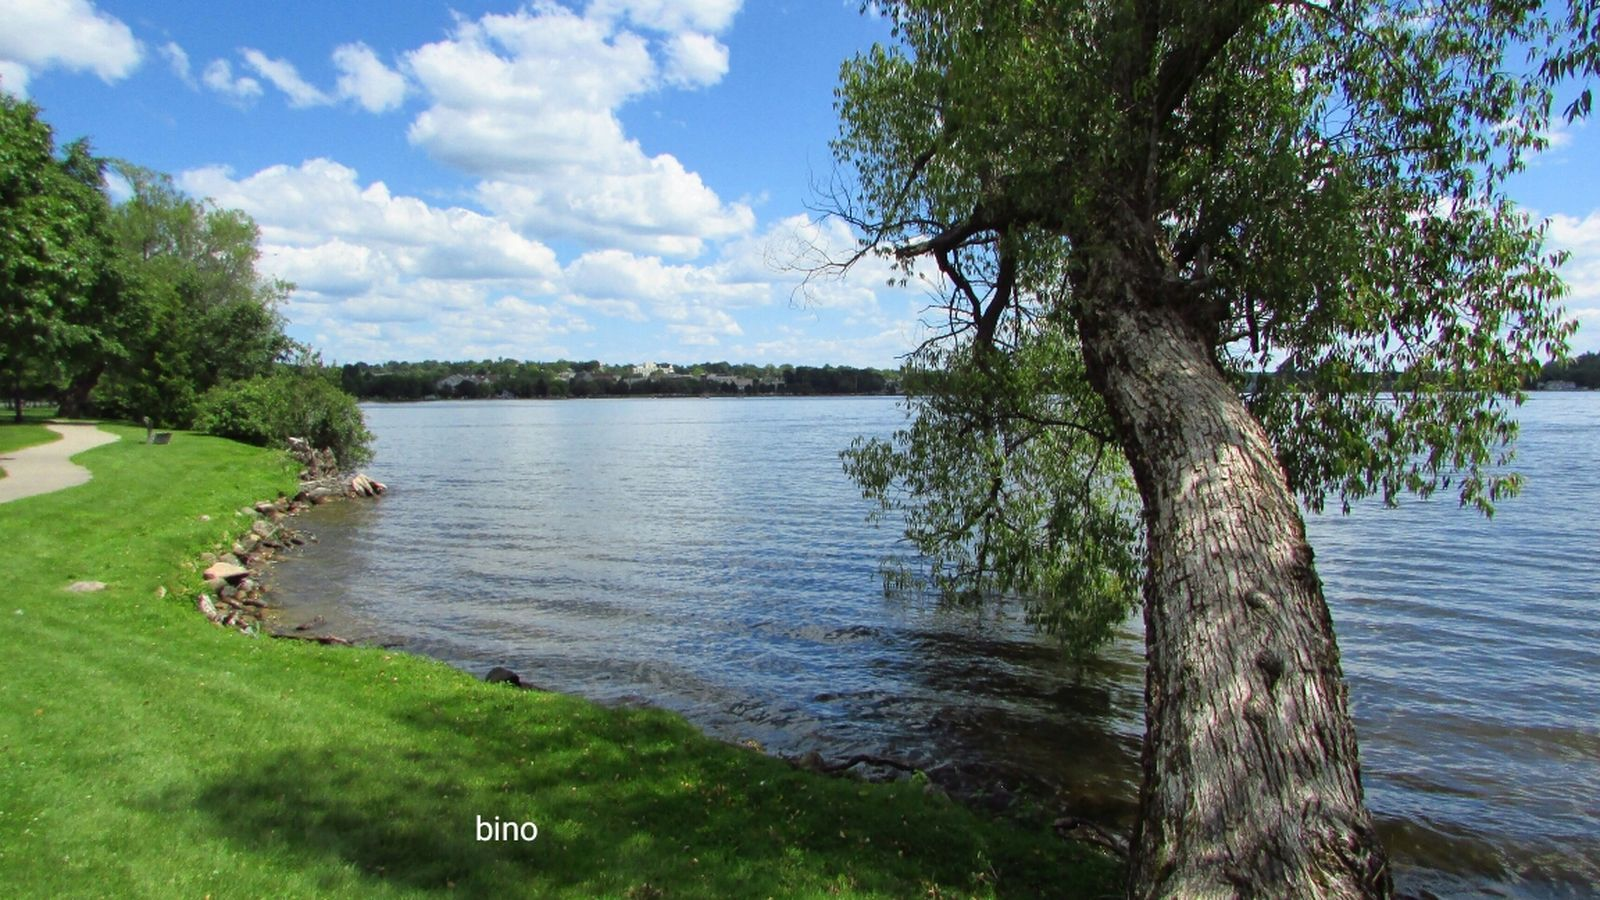 Afternoon Walk Around The Lake Sunny Day 🌞 Blue Sky And White Clouds Leaning Tree Beauty In Nature Lake Cadillac Pure Michigan